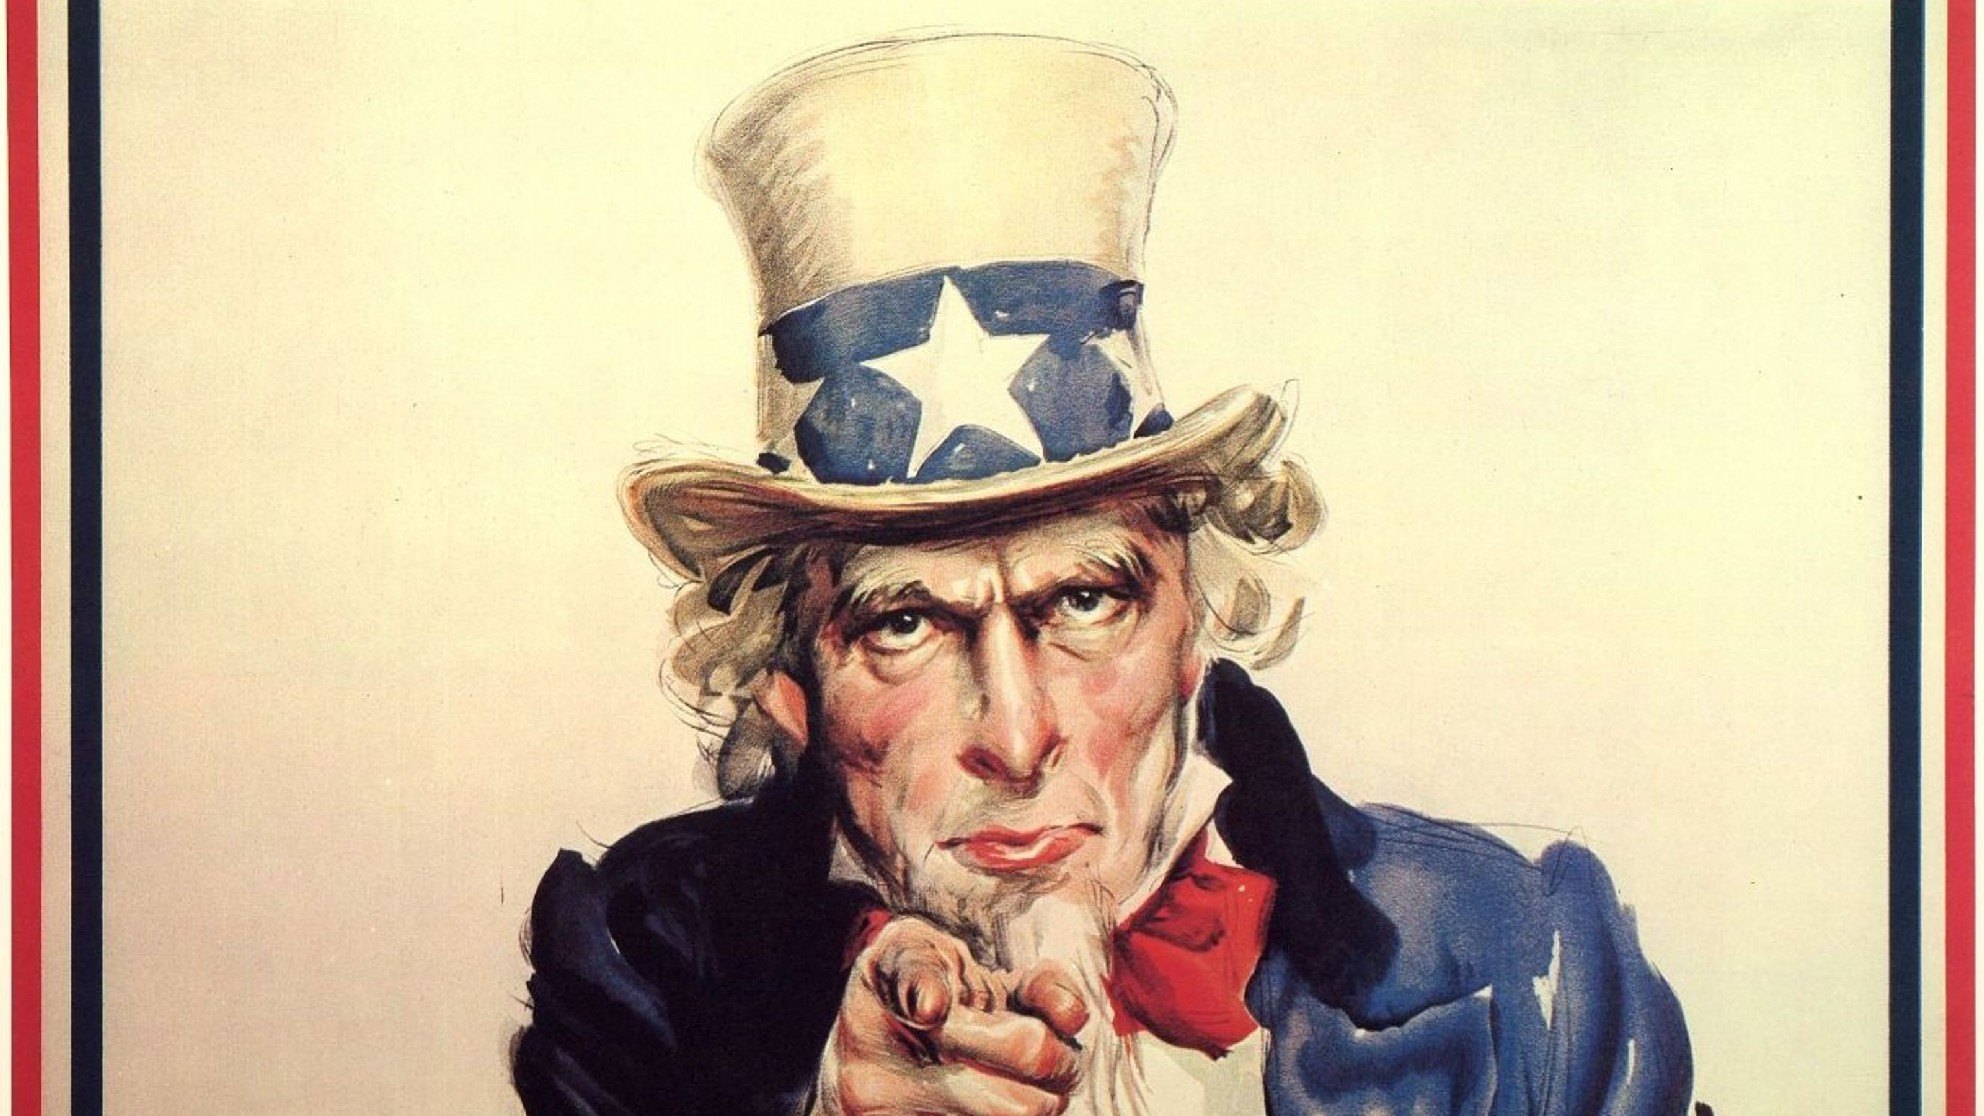 The American Army Needs You!